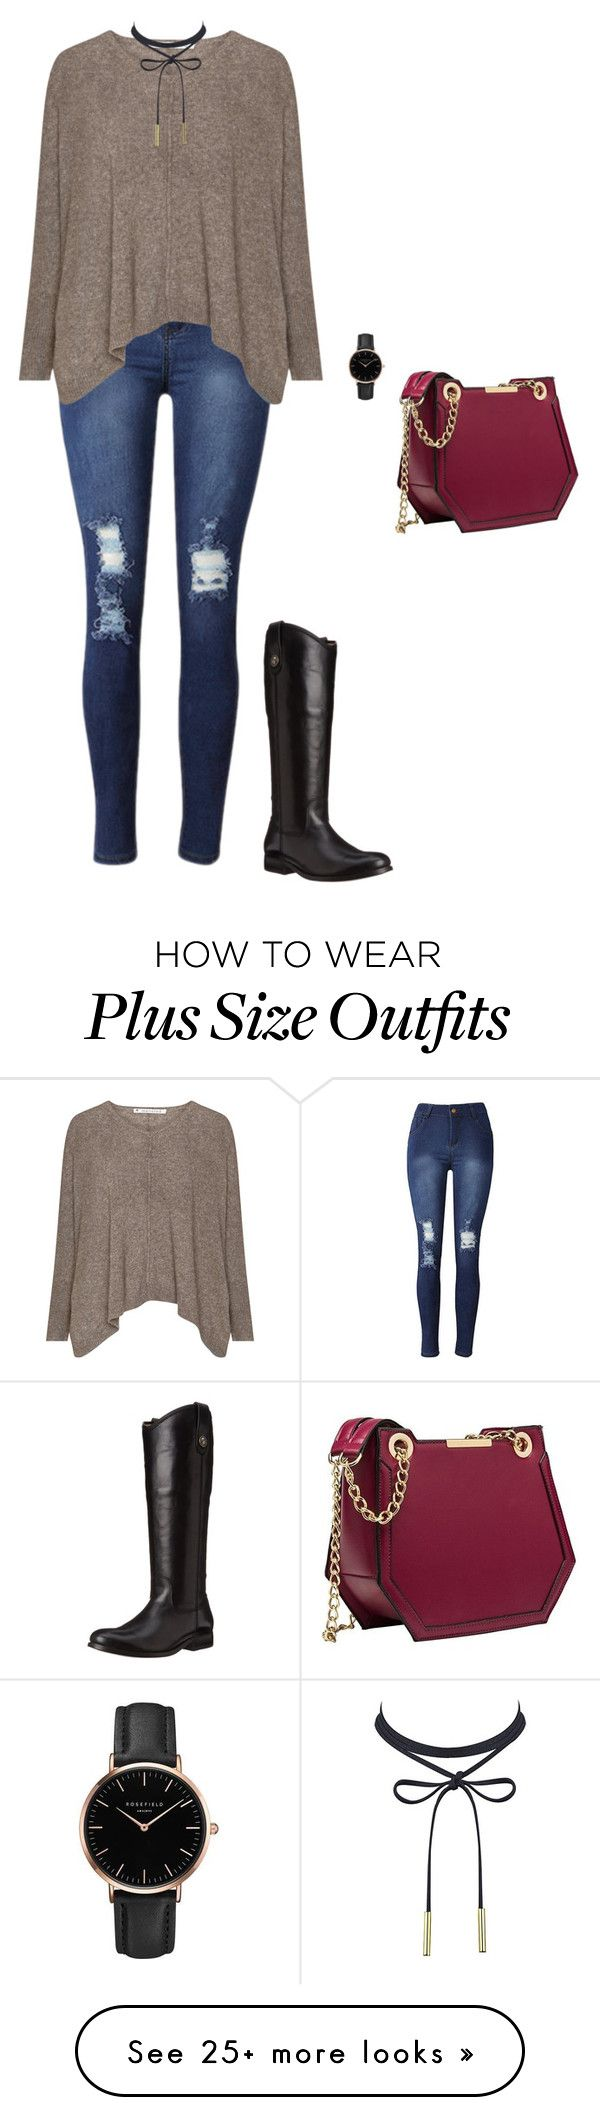 """""""Untitled #540"""" by taylor-edmonds on Polyvore featuring Topshop and Frye"""